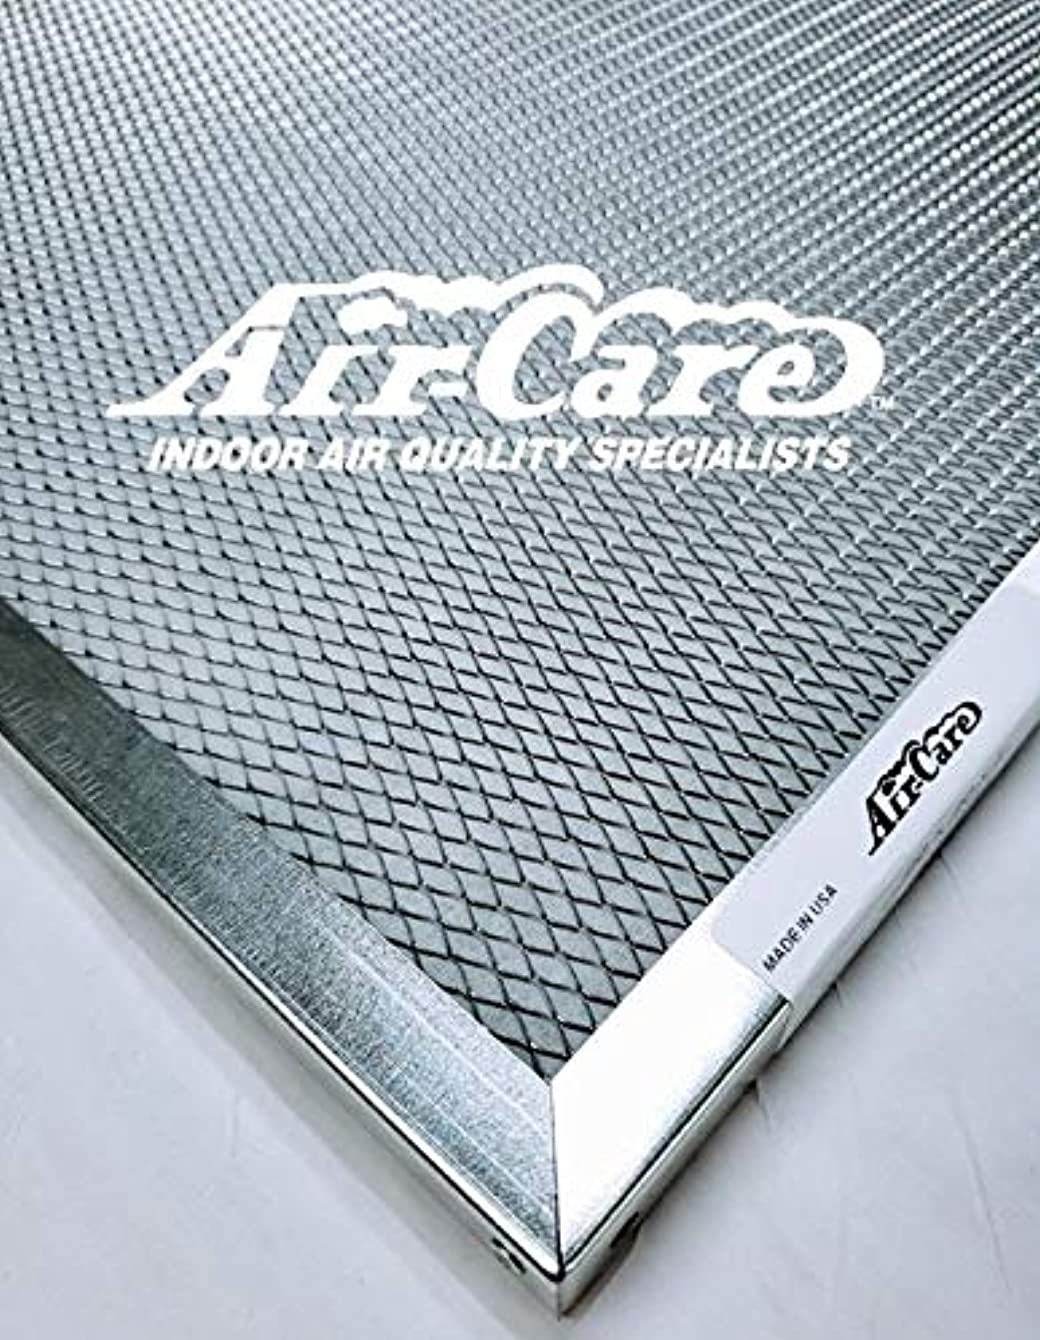 Air-Care Electrostatic, Permanent, Washable - For Furnace or AC - Never Buy Another Air Filter! (18x30x1)